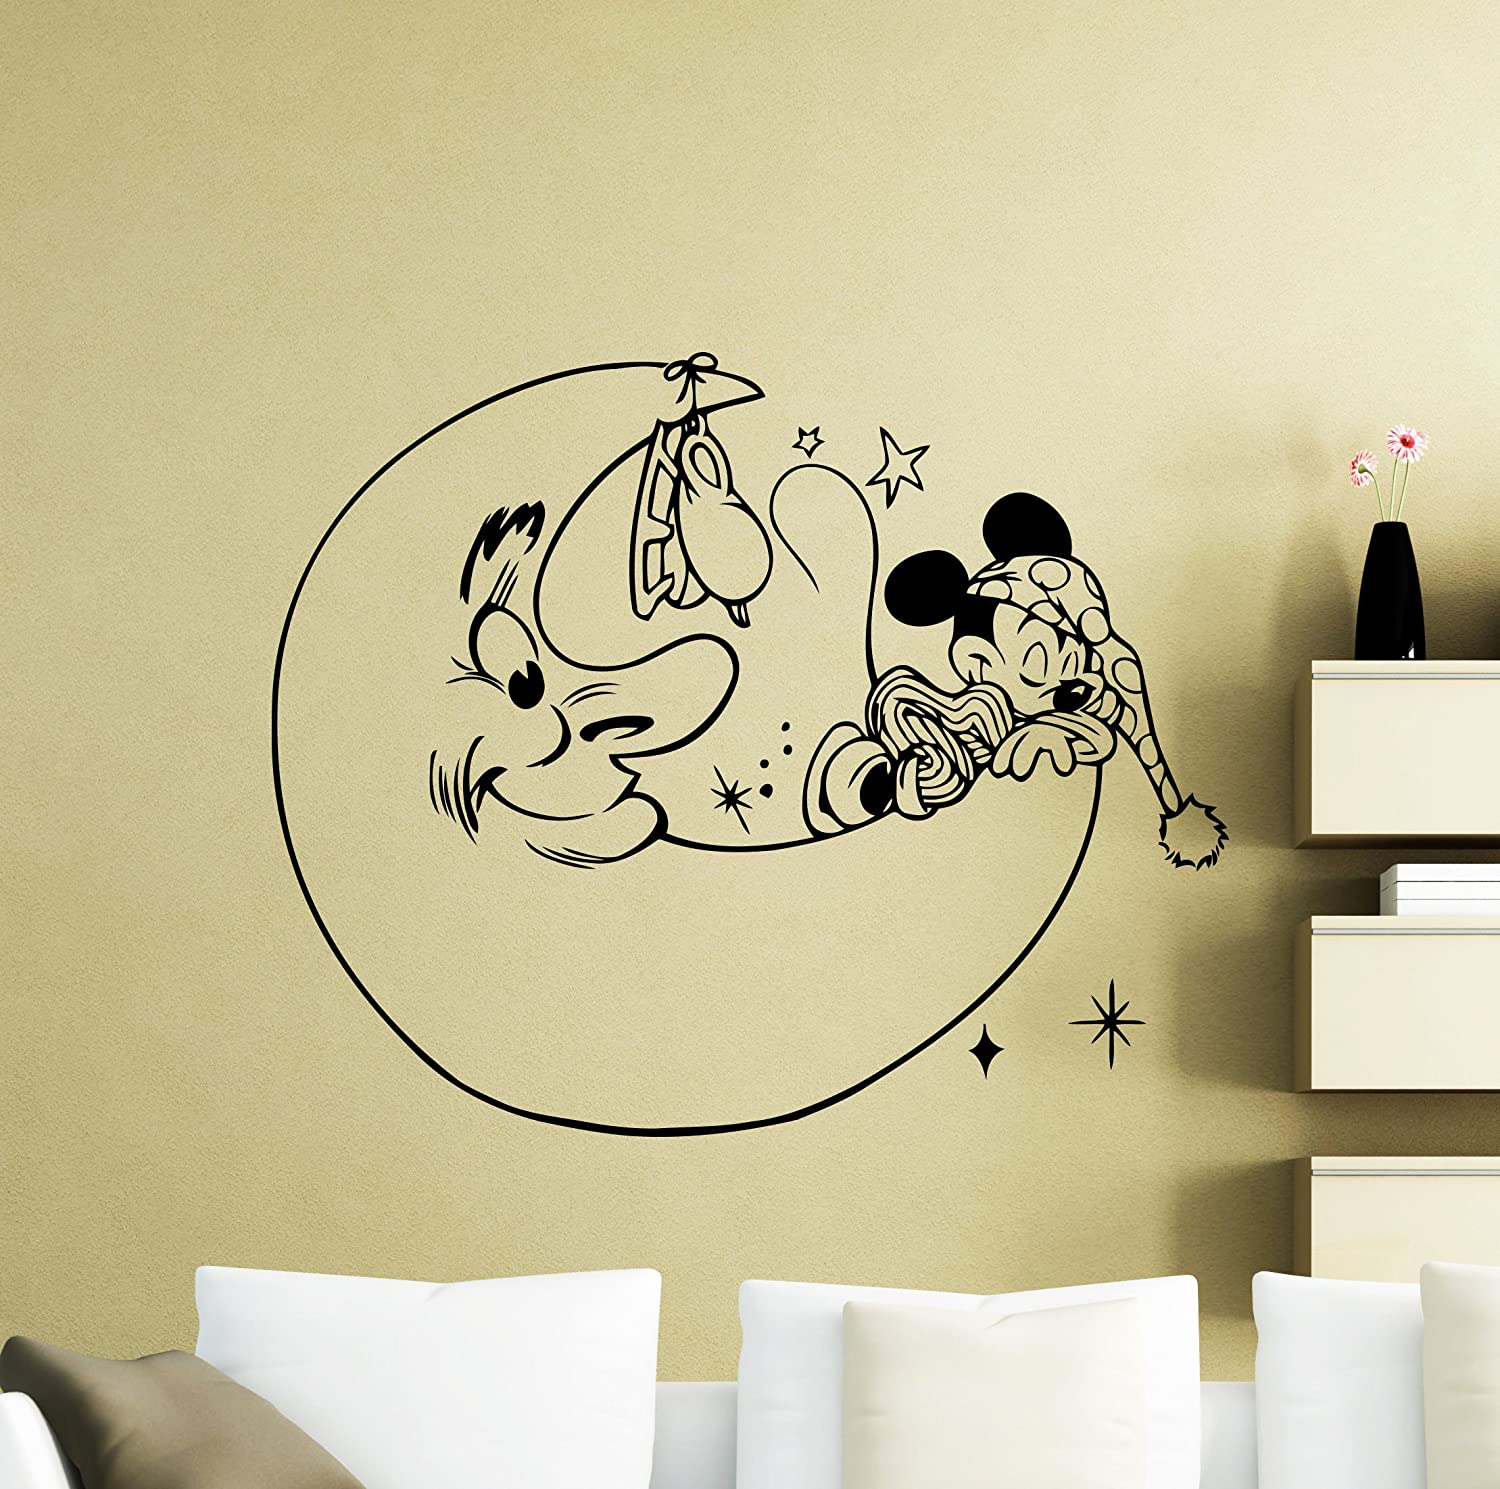 Girl Room Moon Sticker Peel and Stick Above Bed Watercolor Moon Wall Decal Nursery Removable Moon Decal Baby Boy Bedroom 10x10